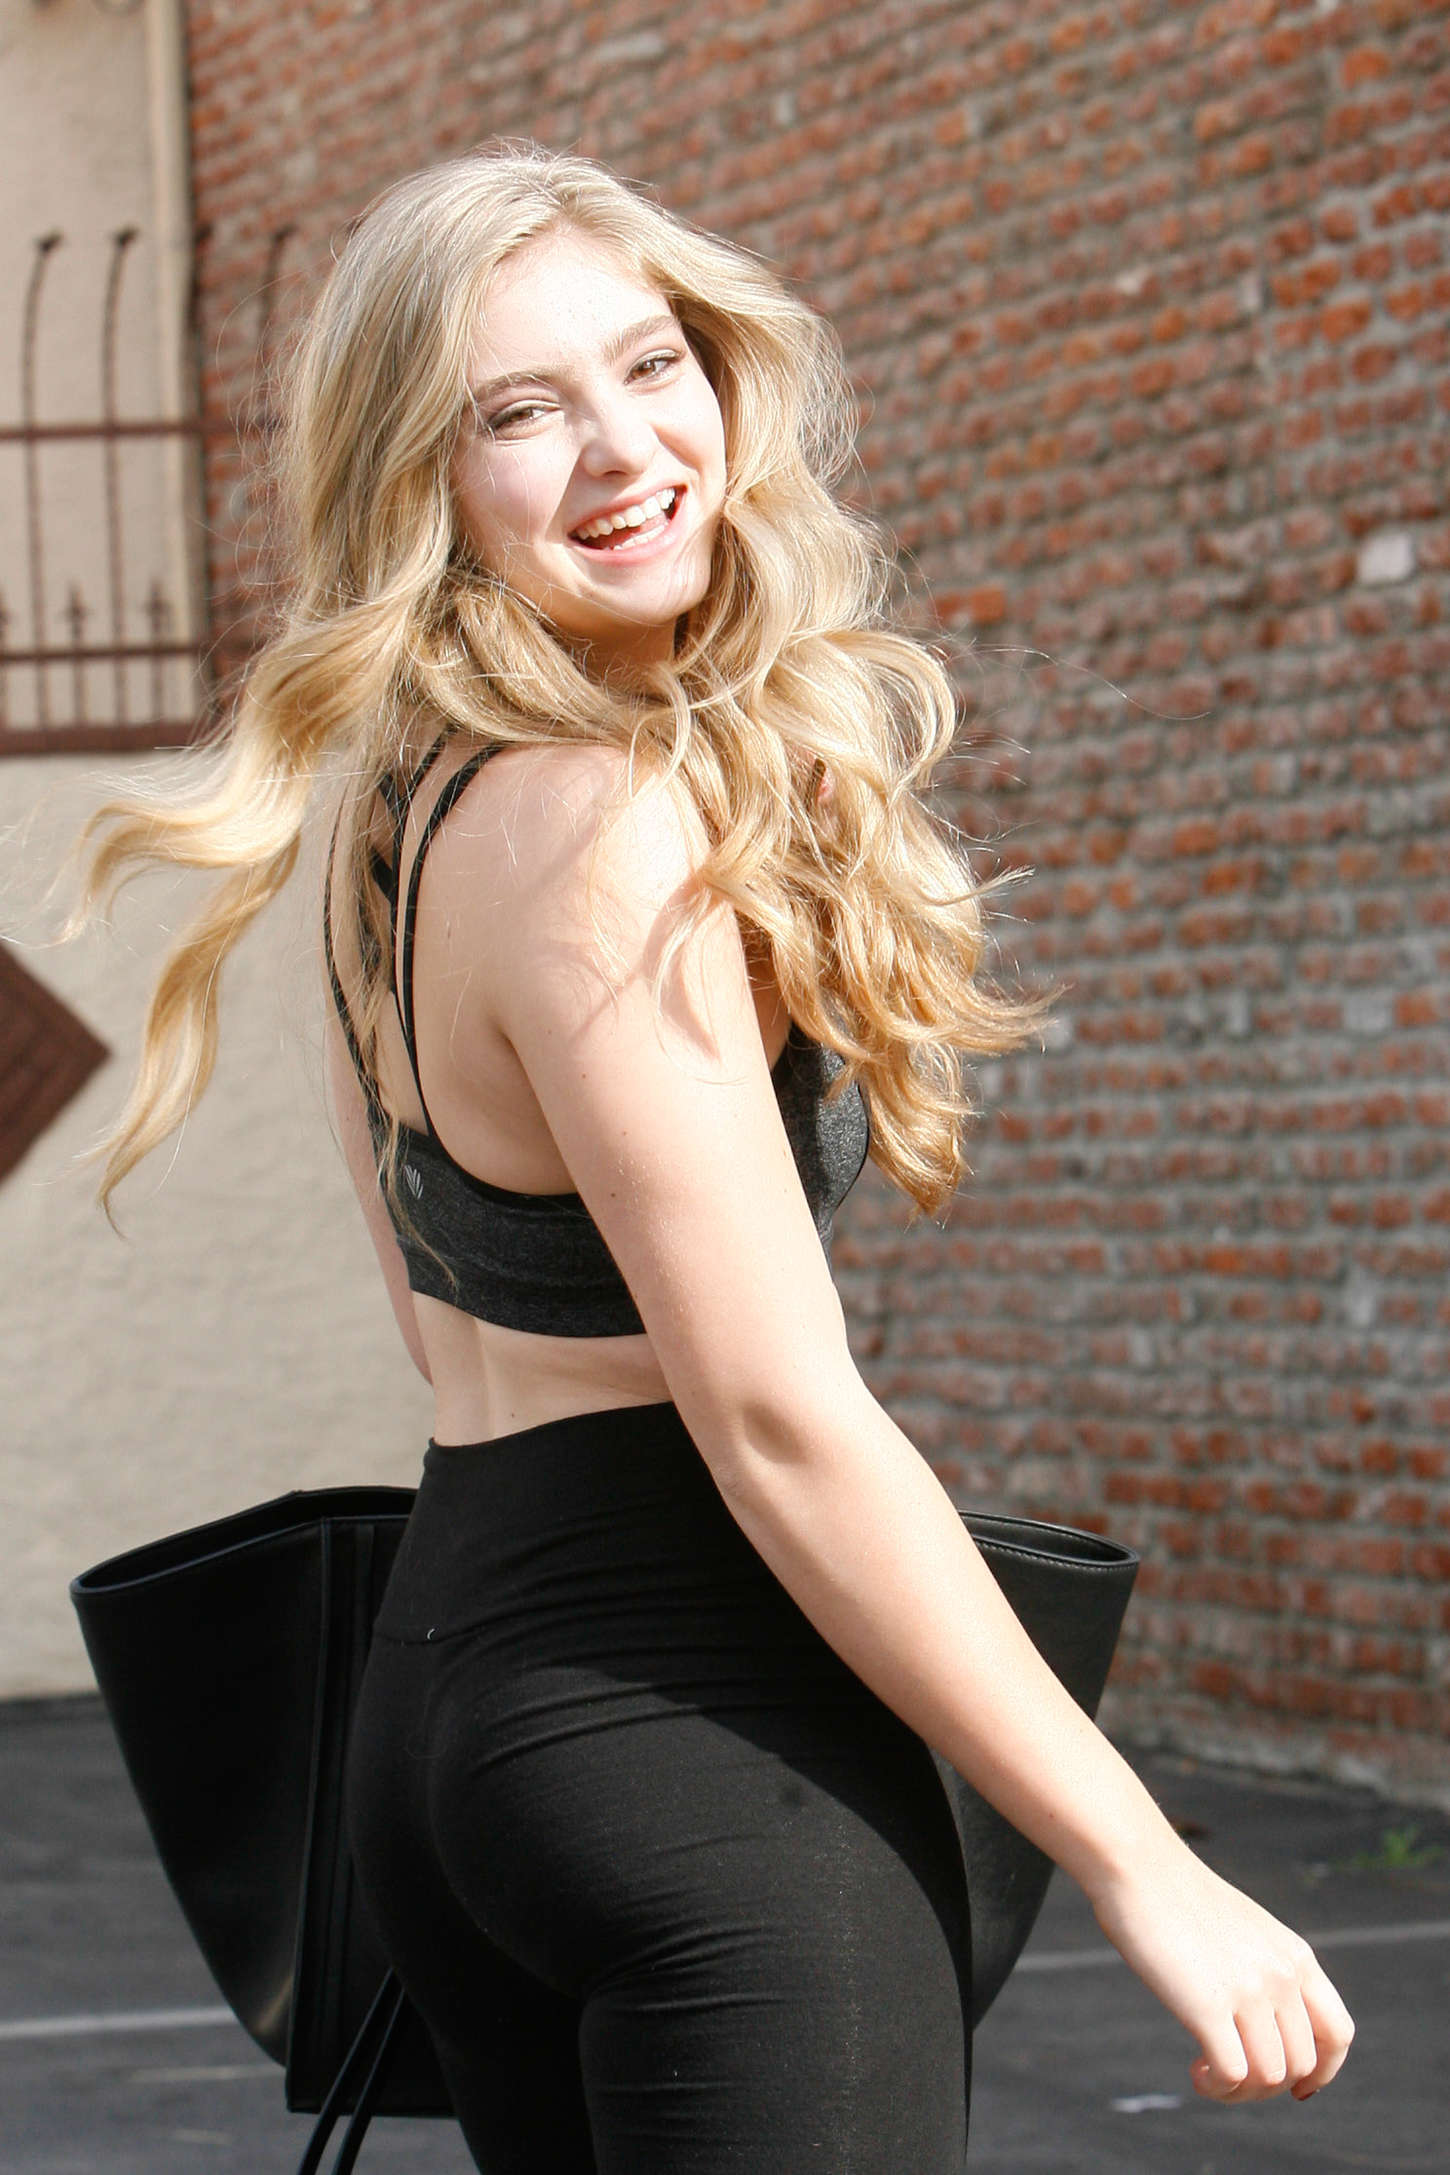 Willow Shields in Leggings at DWTS Rehearsal Studio -11